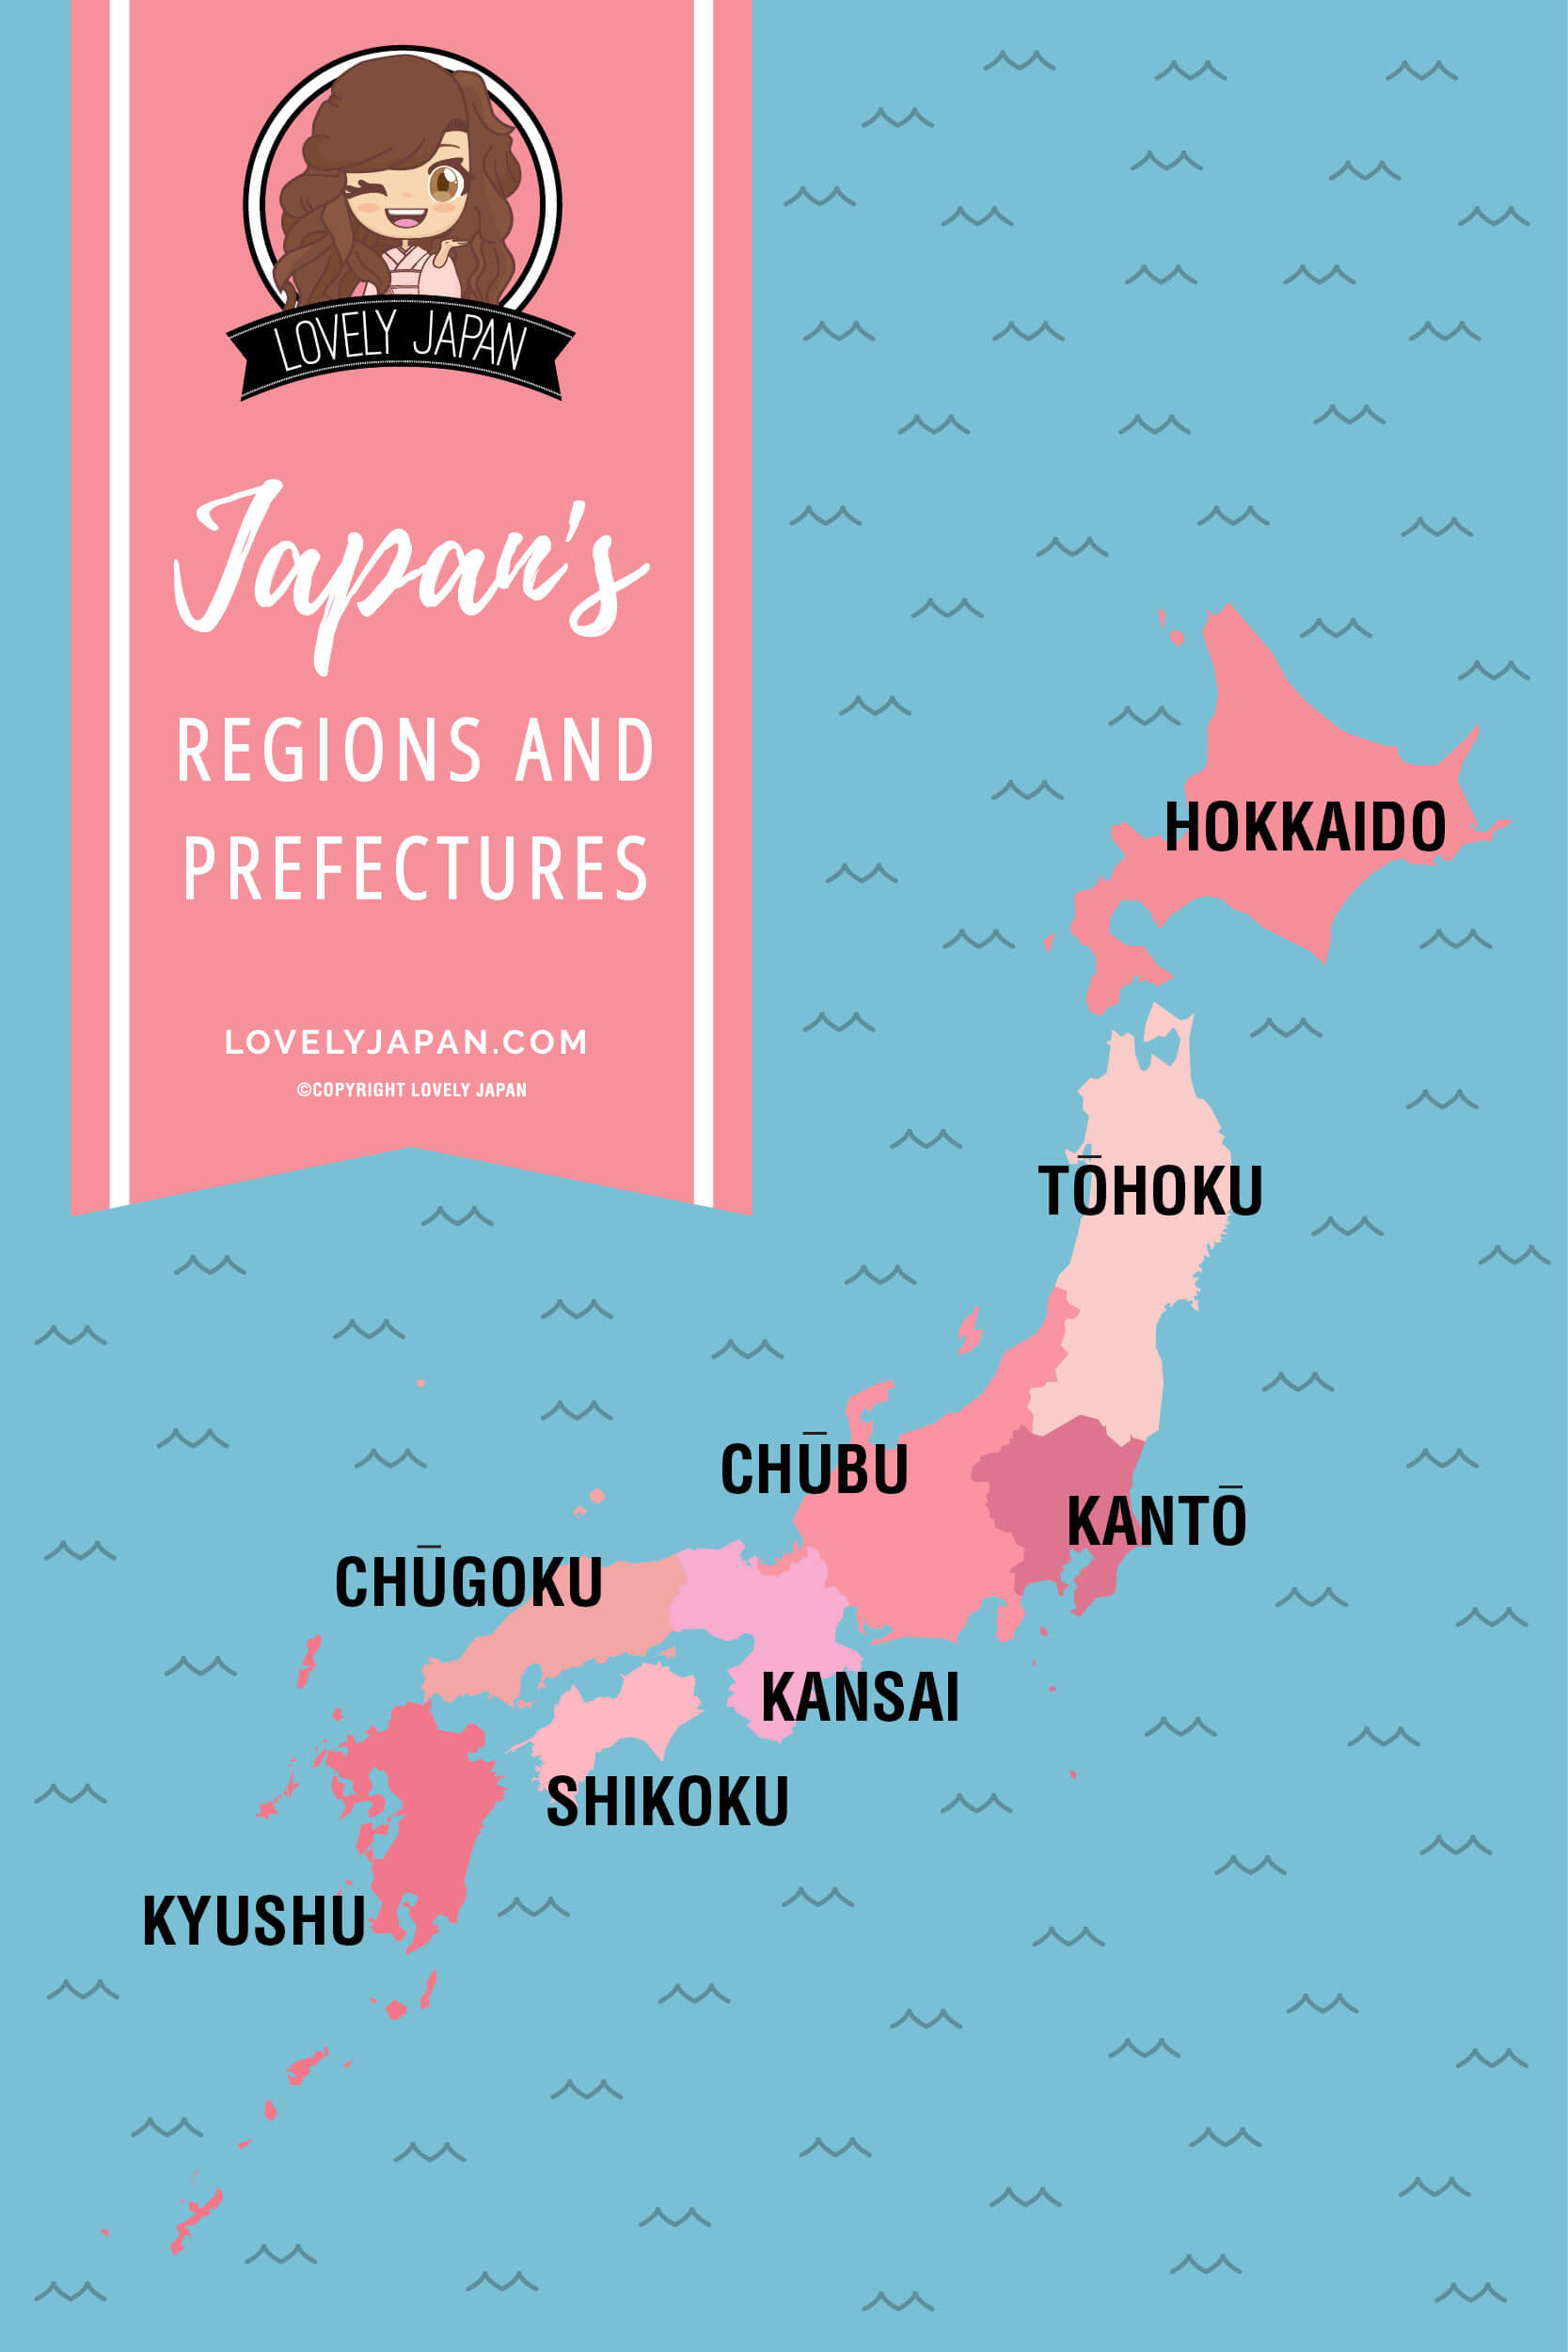 Japan's Regions and Prefectures